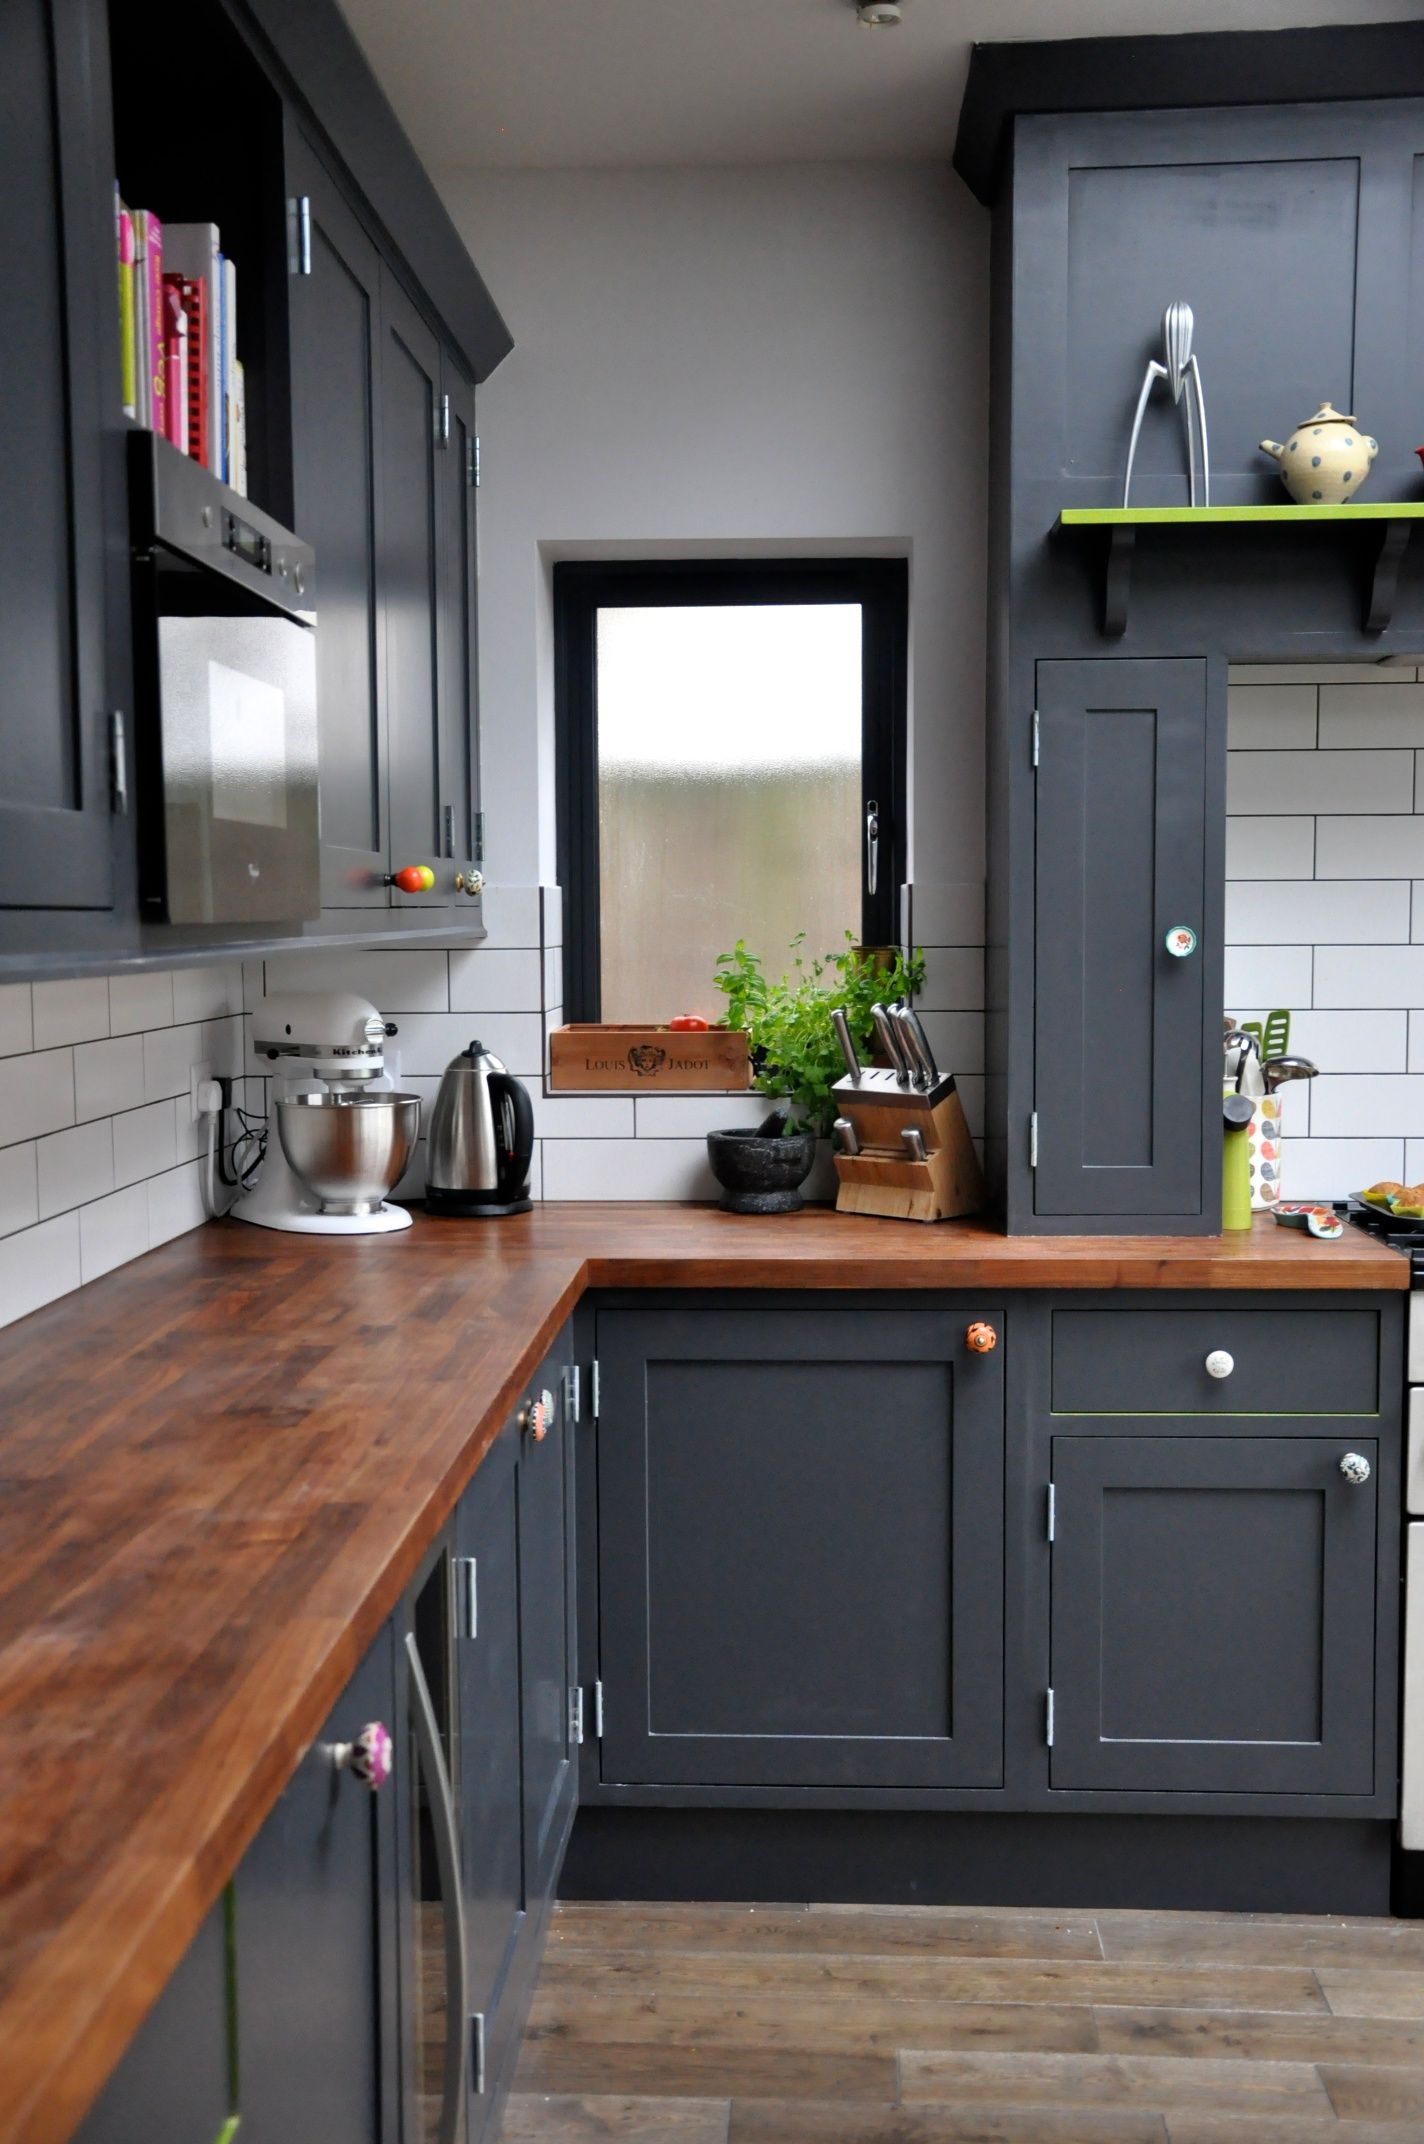 Wooden Counters Can Not Only Look Very Chic But Will Also